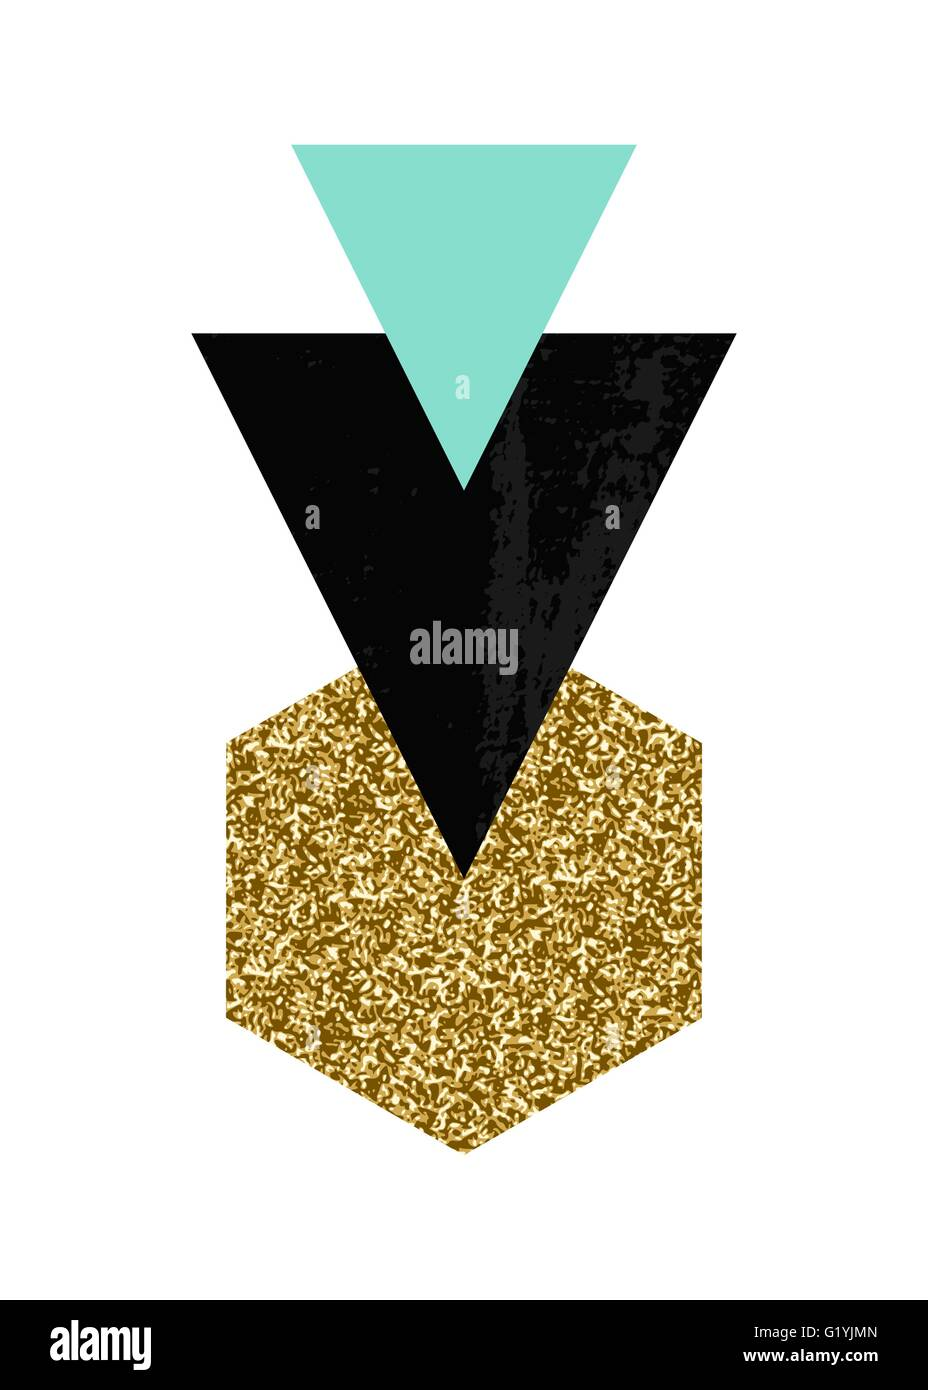 Abstract Composition With Textured Geometric Shapes In Black Turquoise Green And Gold Glitter Minimalist Modern Poster Br